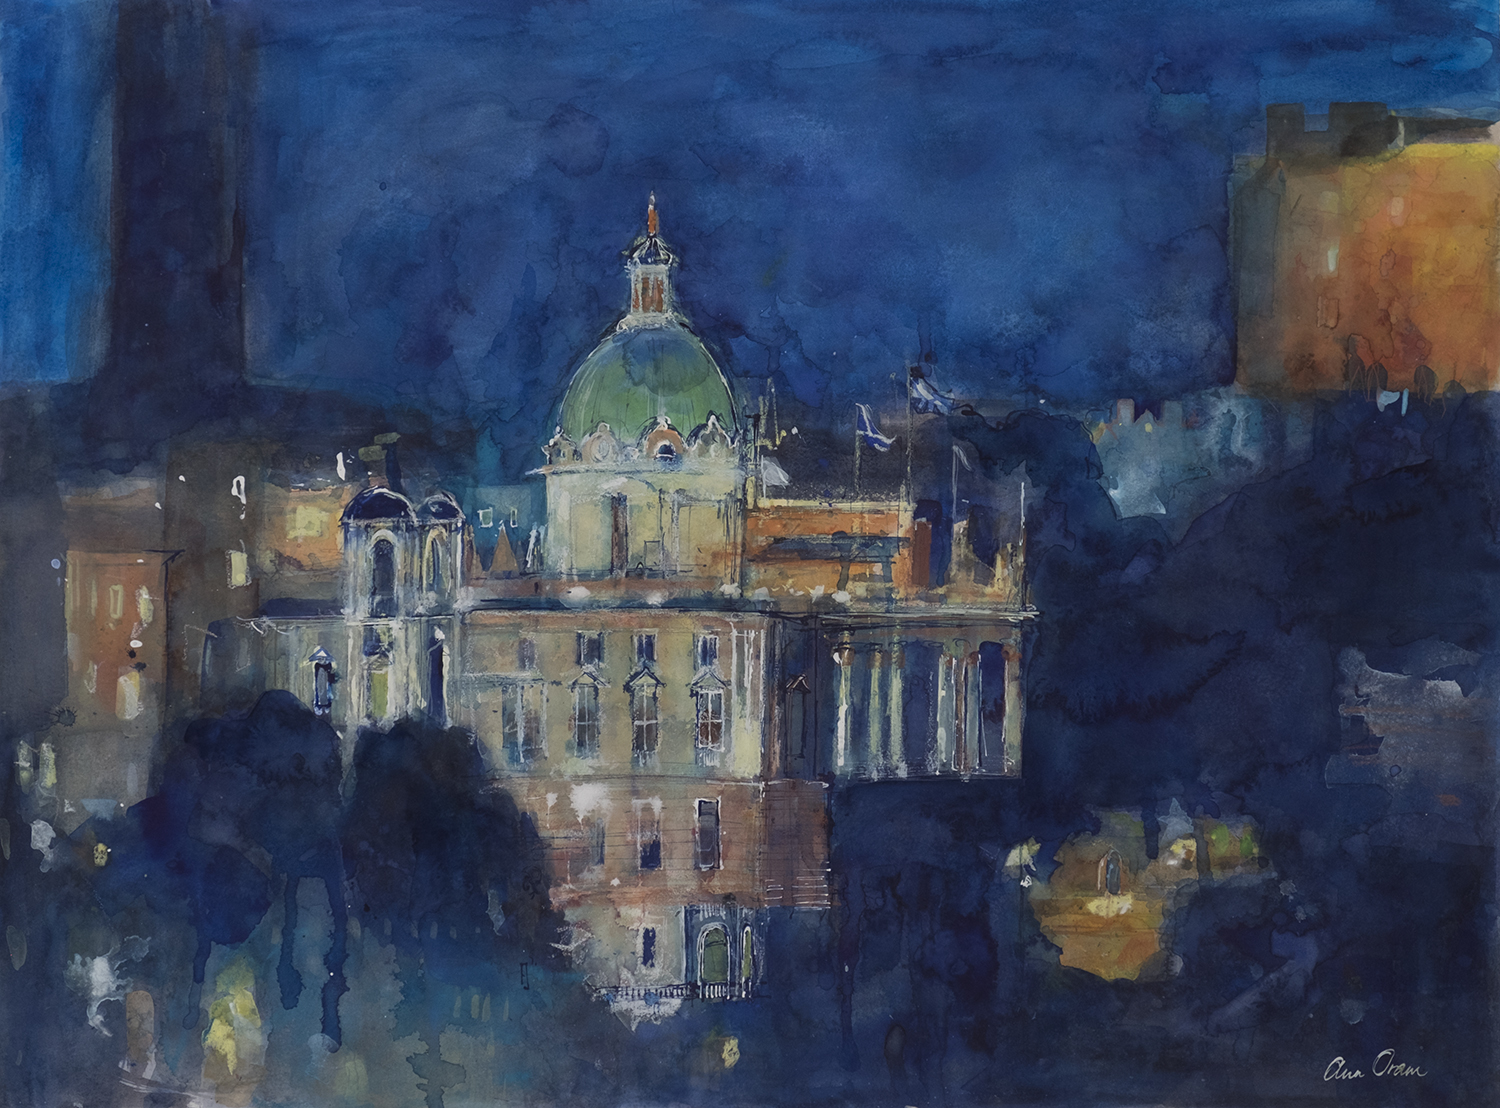 'Bank of Scotland at The Mound. Nocturne' Ann Oram Watercolour, gouache, ink and oil pastel on paper, 54x76cm, 2017